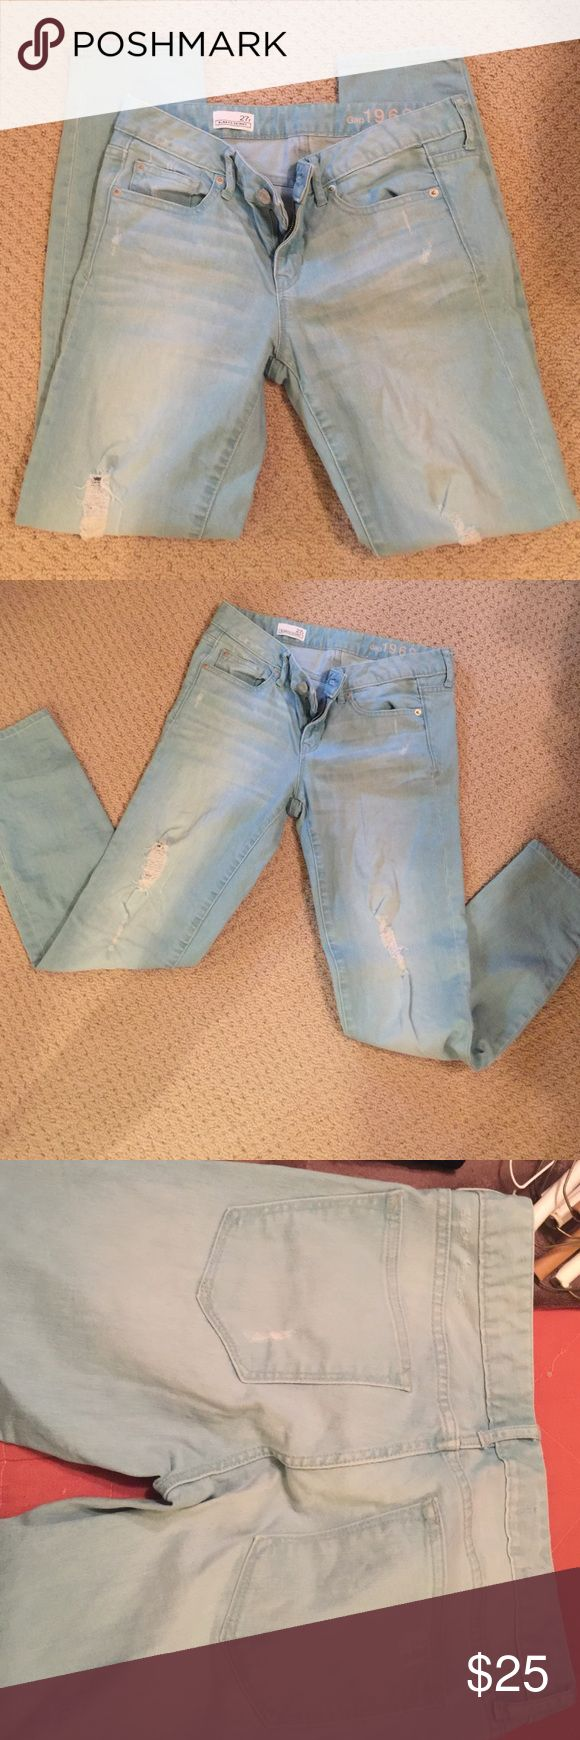 Light denim hole-y gap jeans Always skinny GAP Light colored denim jeans with holes and rips. Worn only a few times GAP Pants